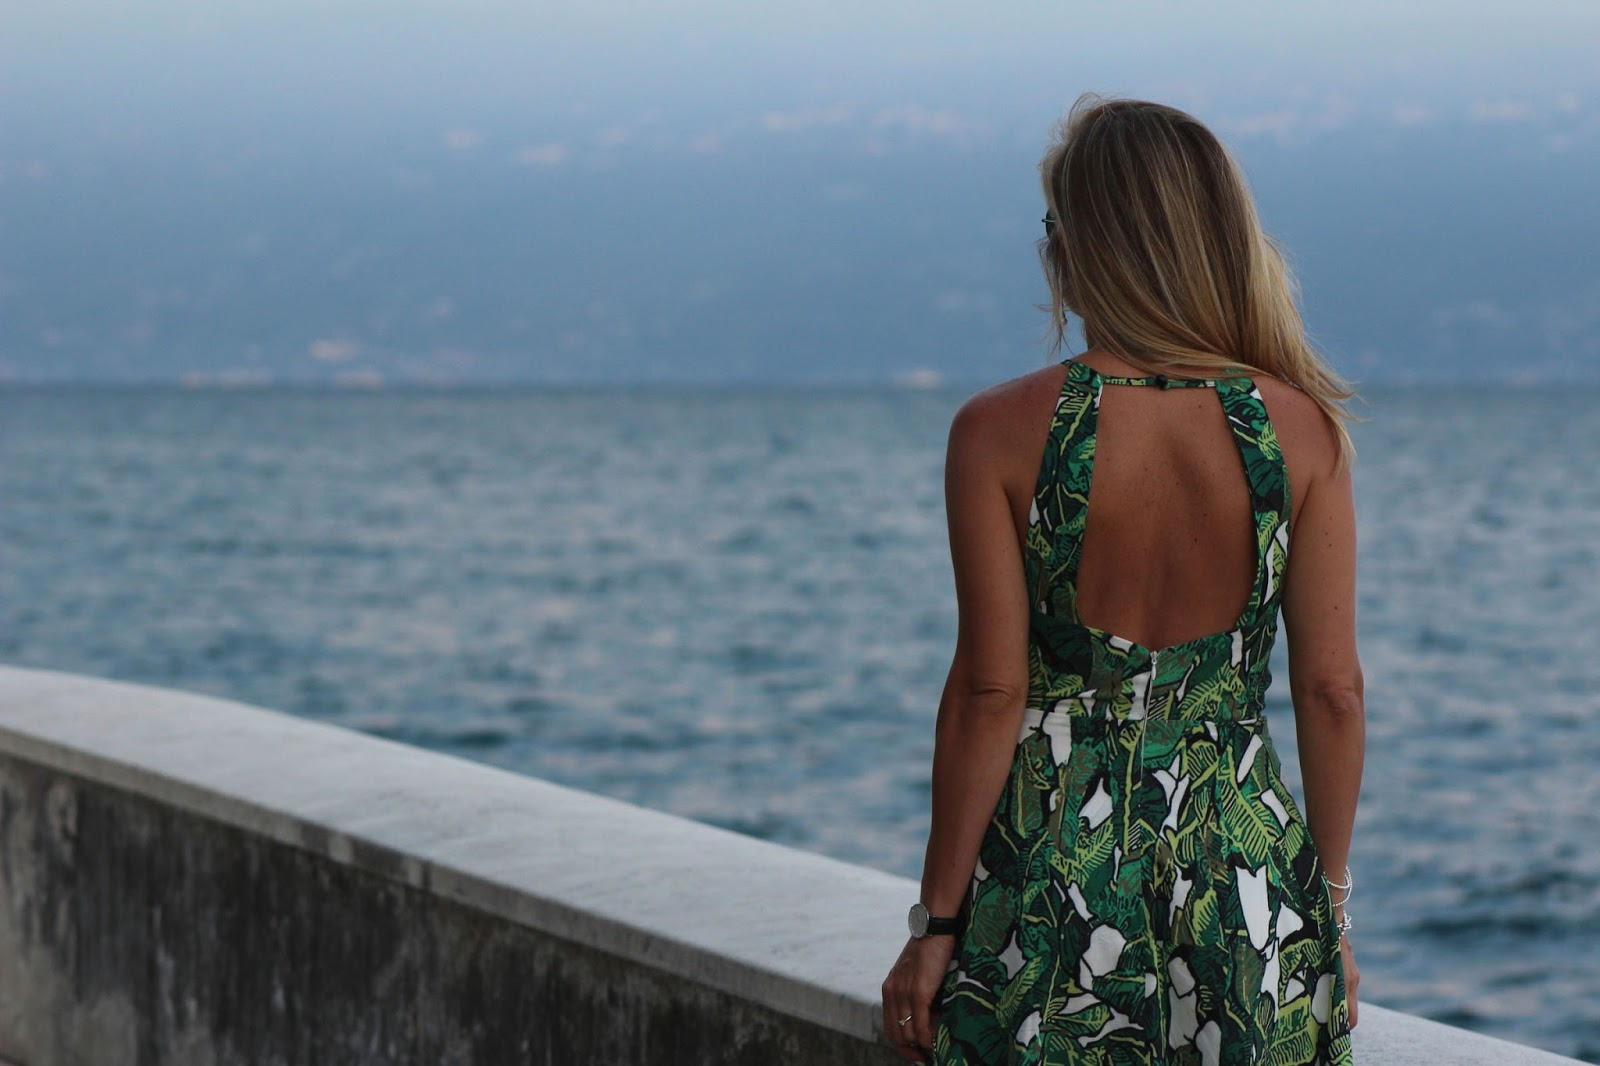 Eniwhere Fashion - SheIn Salò - Green dress